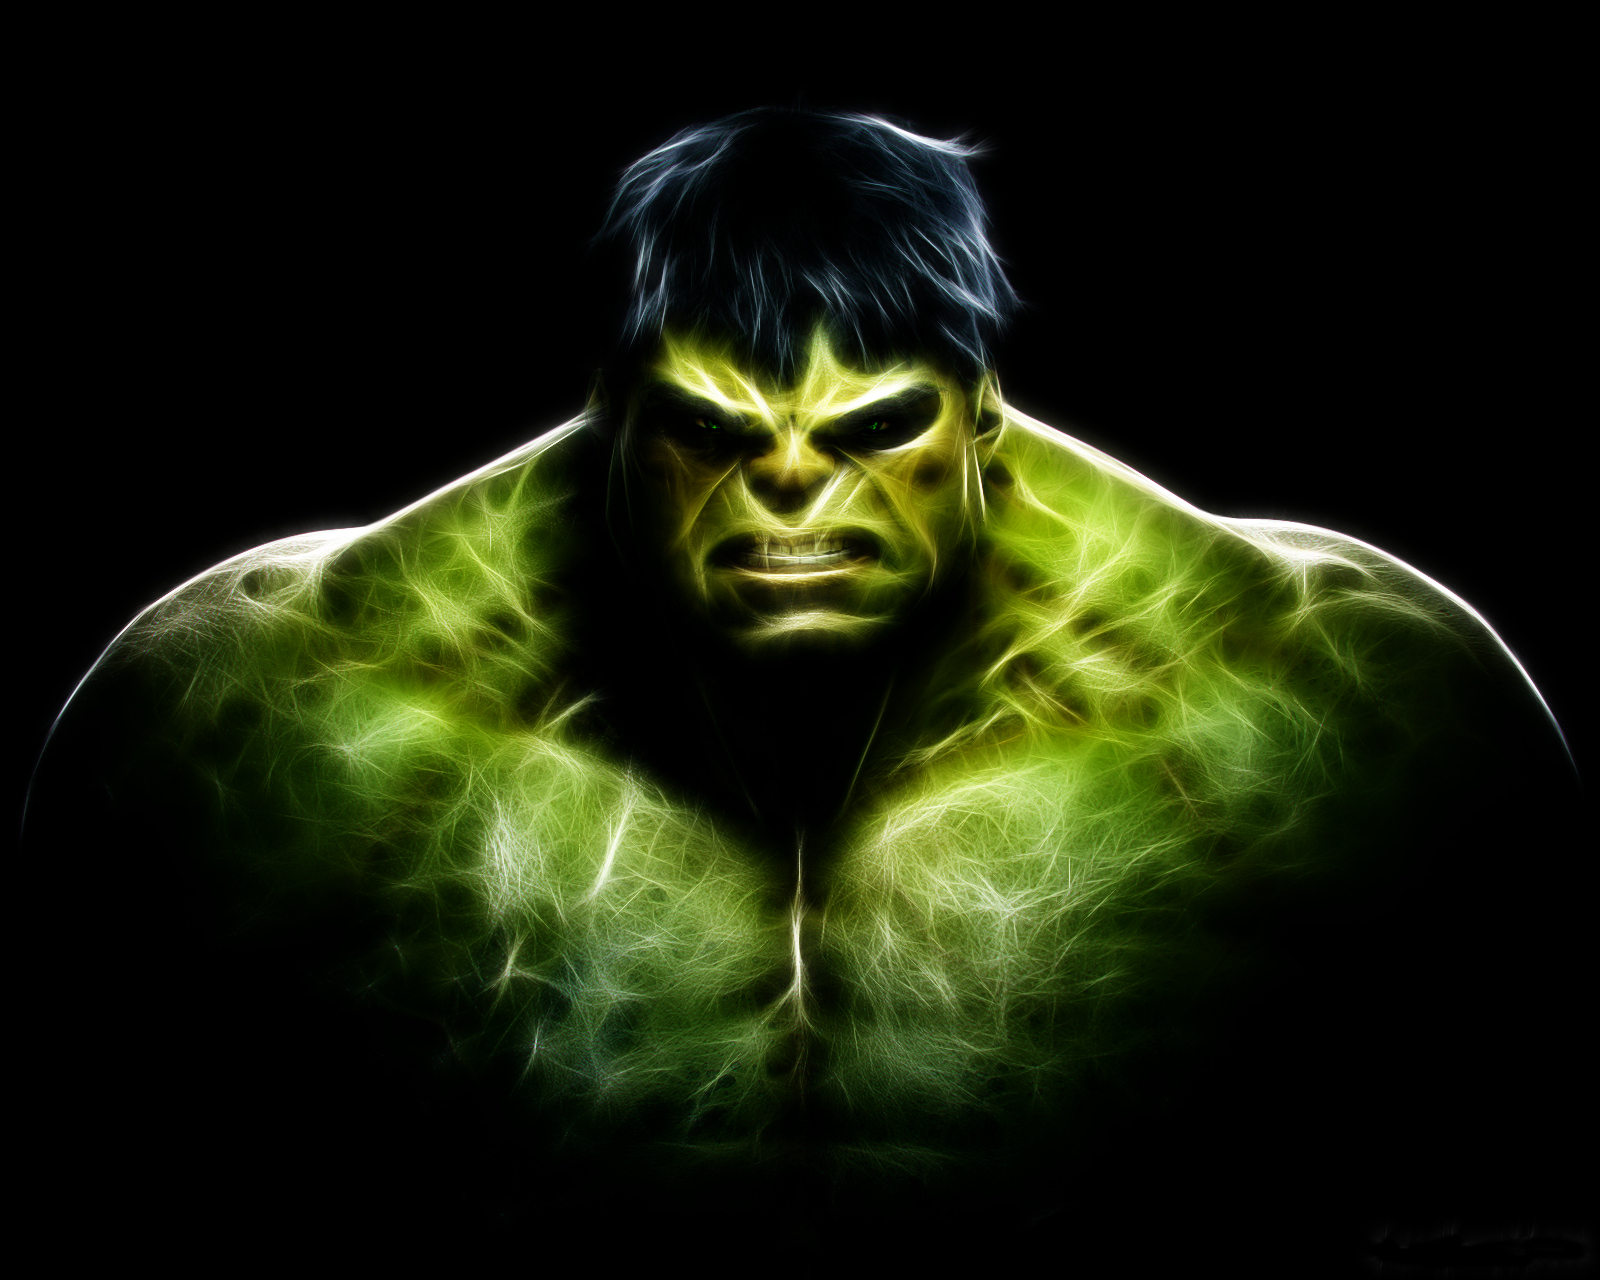 Desktop wallpaper incredible hulk 3d hd wallpaper - Hulk hd images free download ...